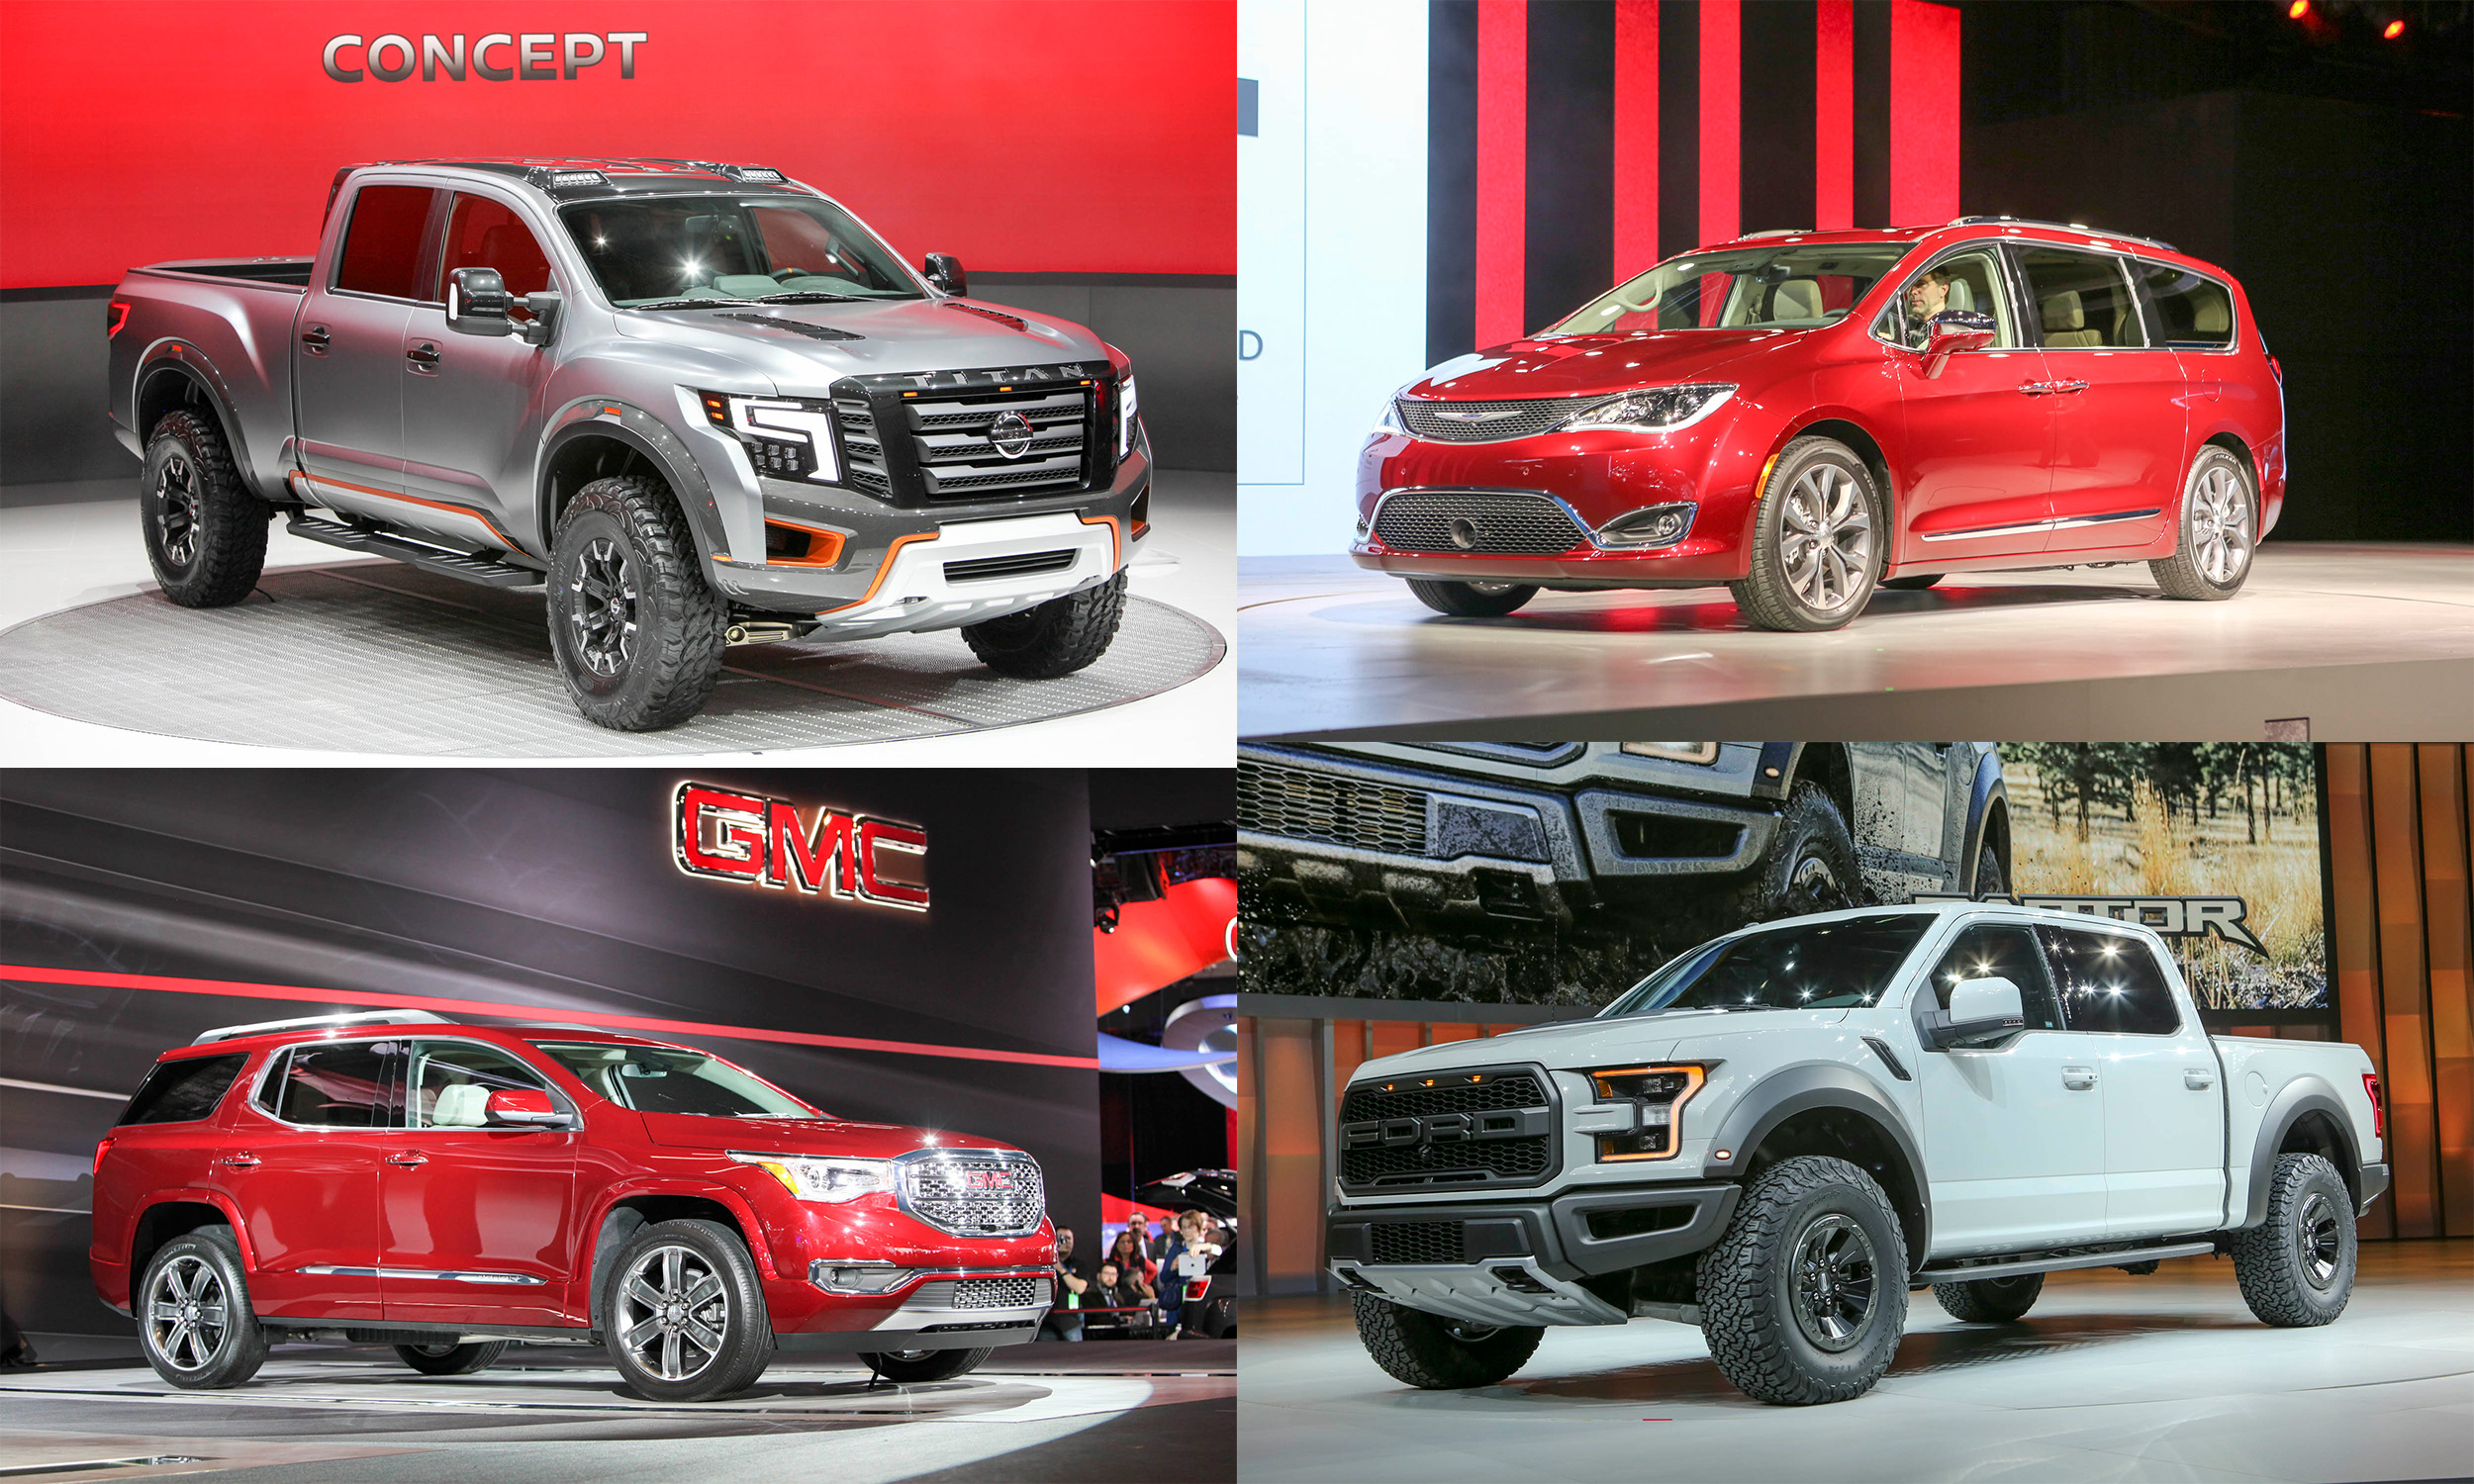 Trucks And Suvs Specifically Crossovers Continue Their S Reign In America So It No Surprise That A Number Of New Models Were Ready To Join The